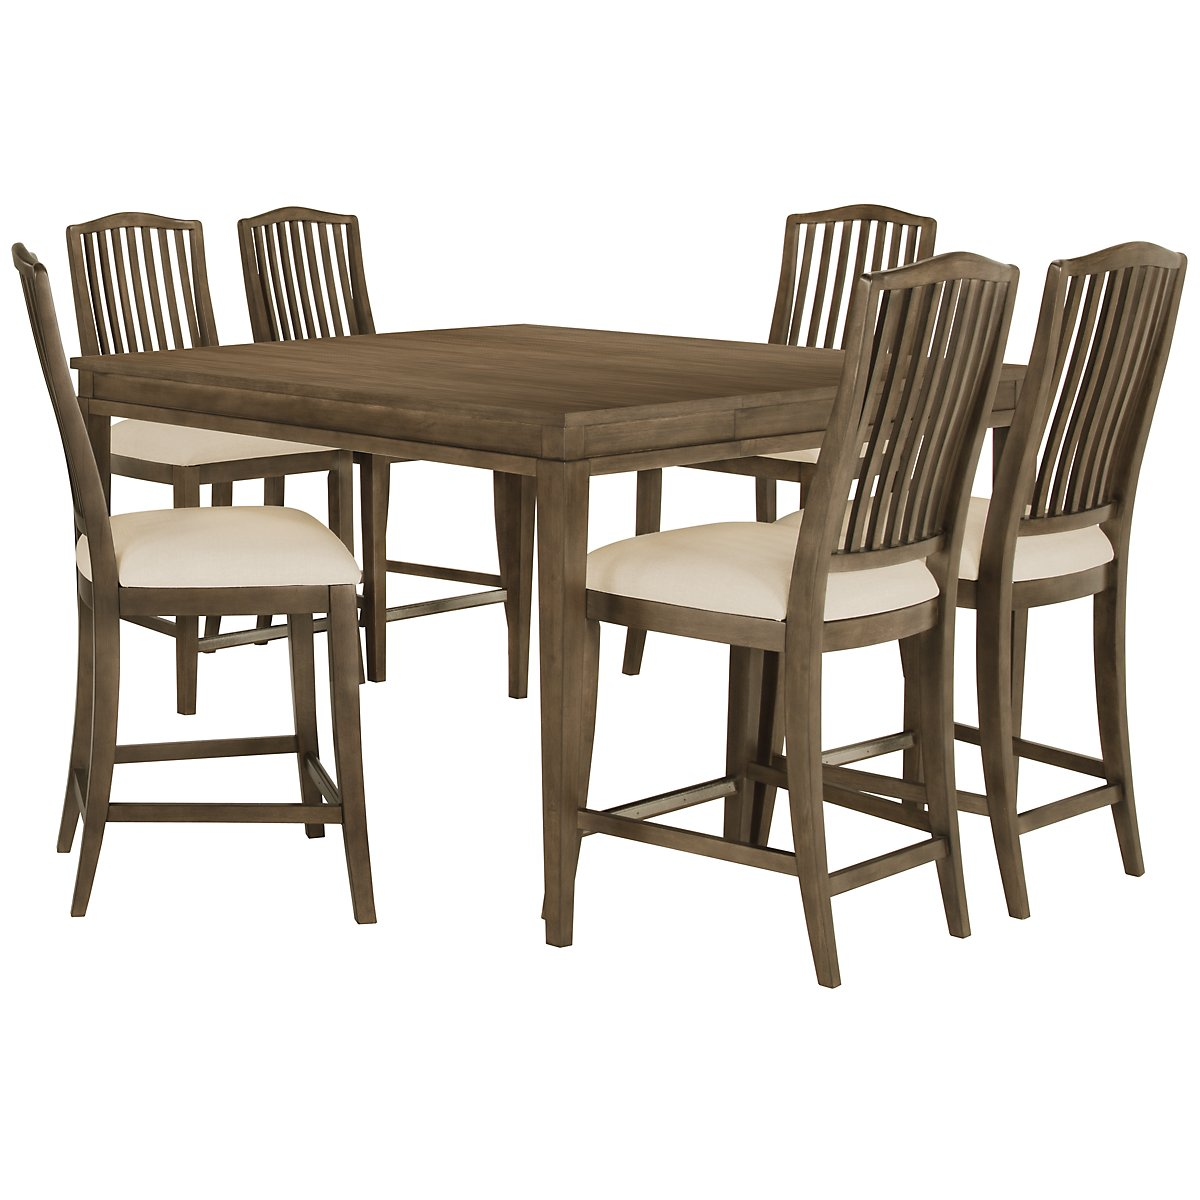 Preston Gray High Table & 4 Barstools